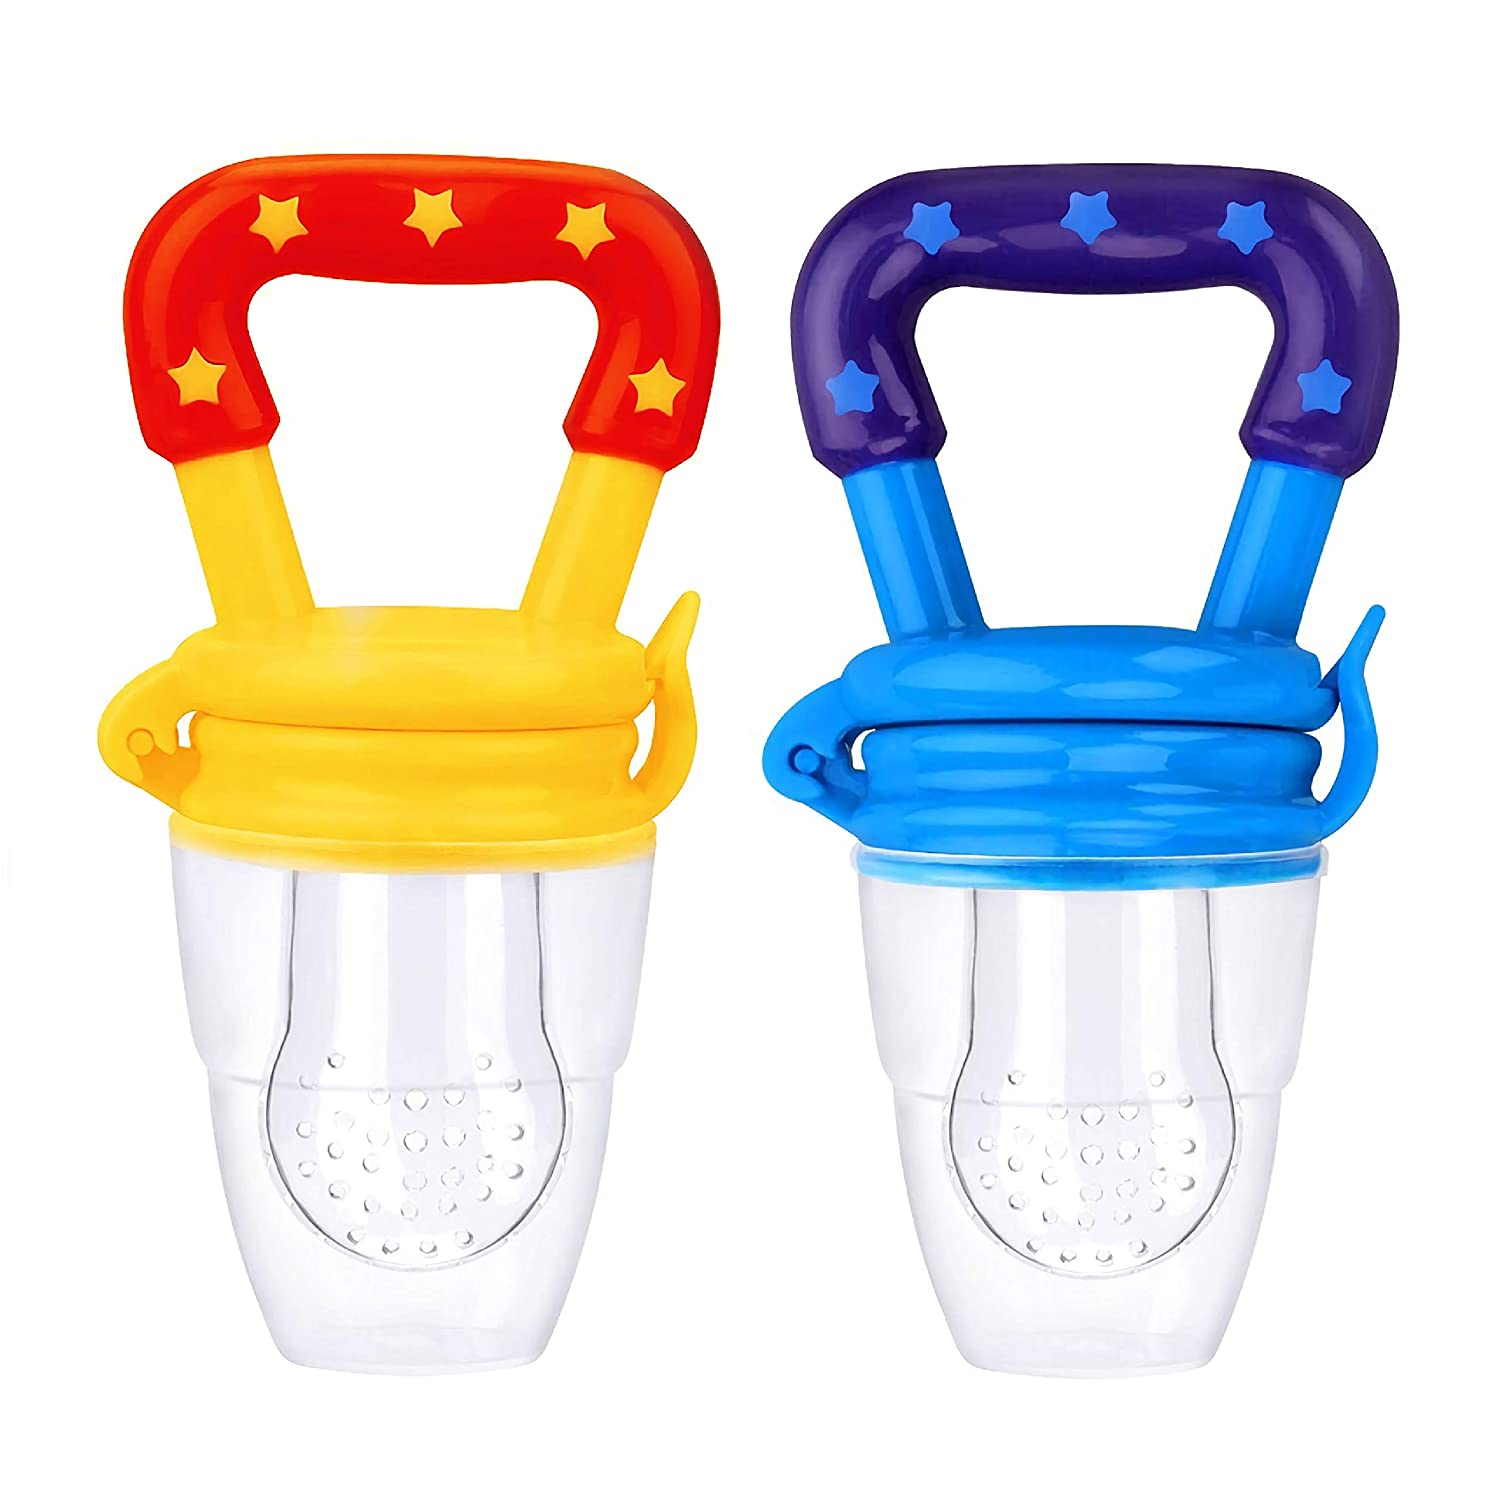 Baby Pacifier Food and Fruit Feeder, Silicone Teether, Medium Size for Baby Boy 6-9 Months Old, Yellow & Blue - 2 Pack